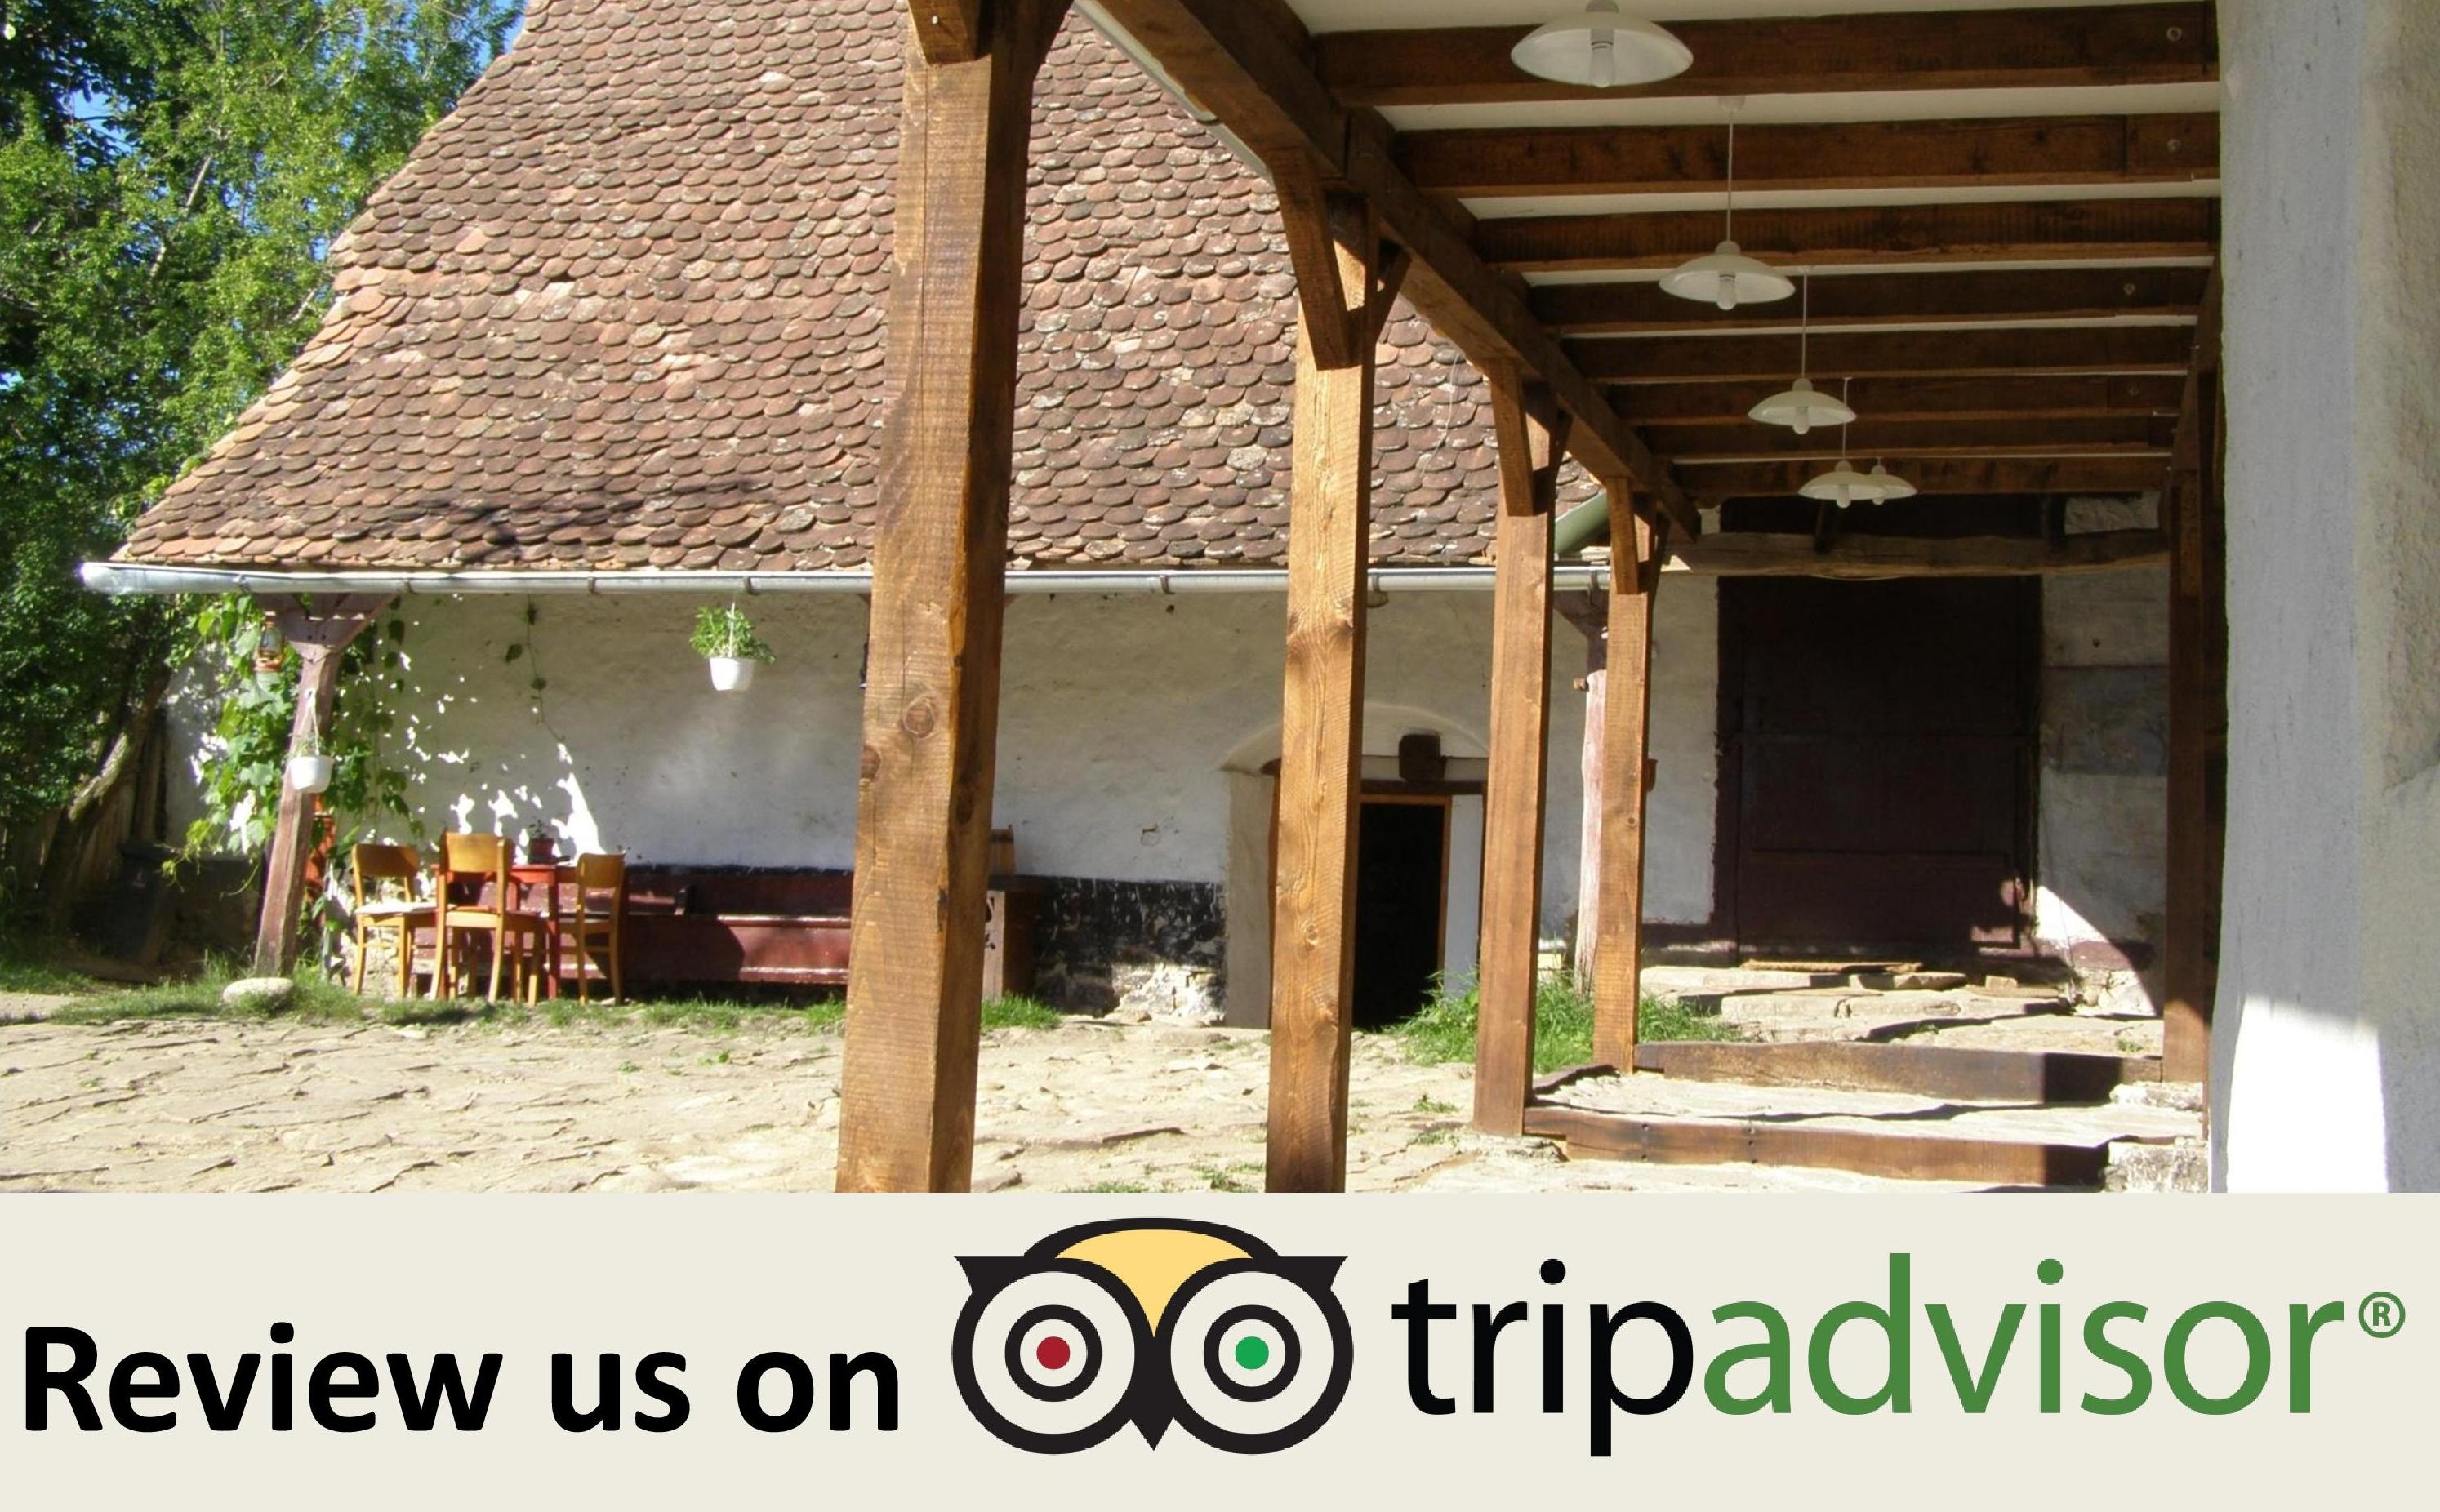 Review Viscri 44 on TripAdvisor